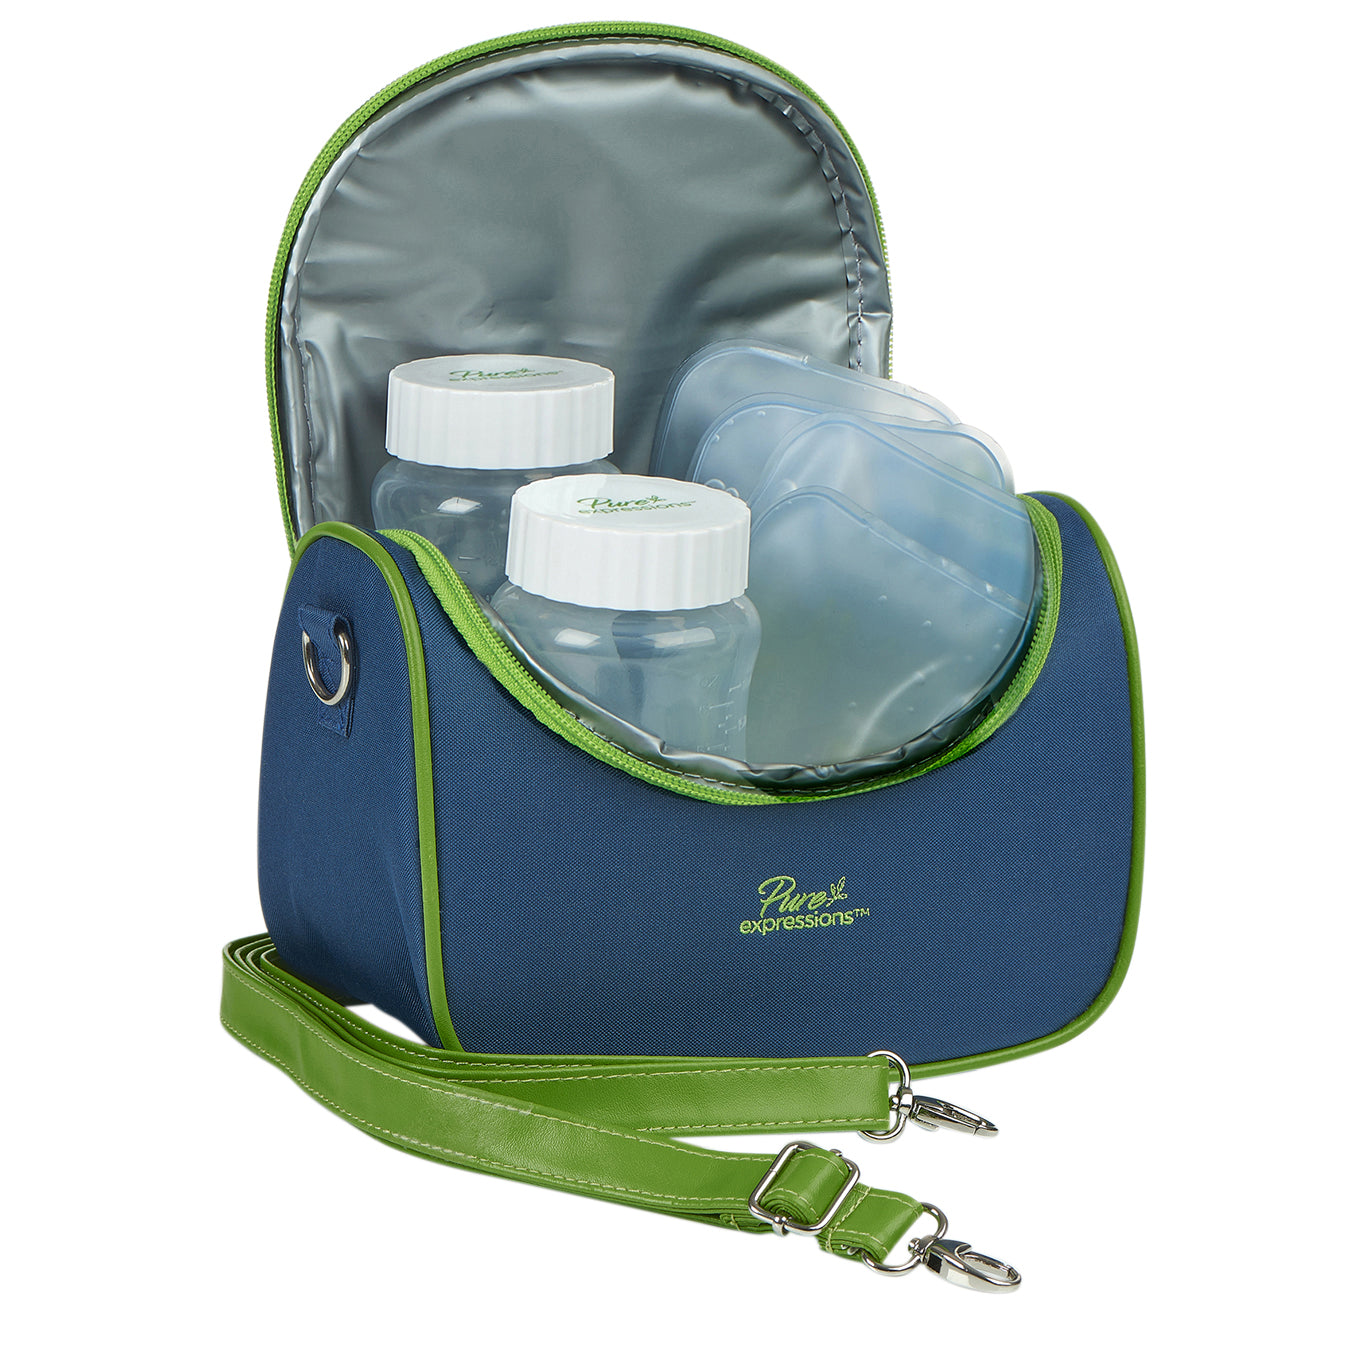 Drive Pure Expressions Insulated Cooler Bag